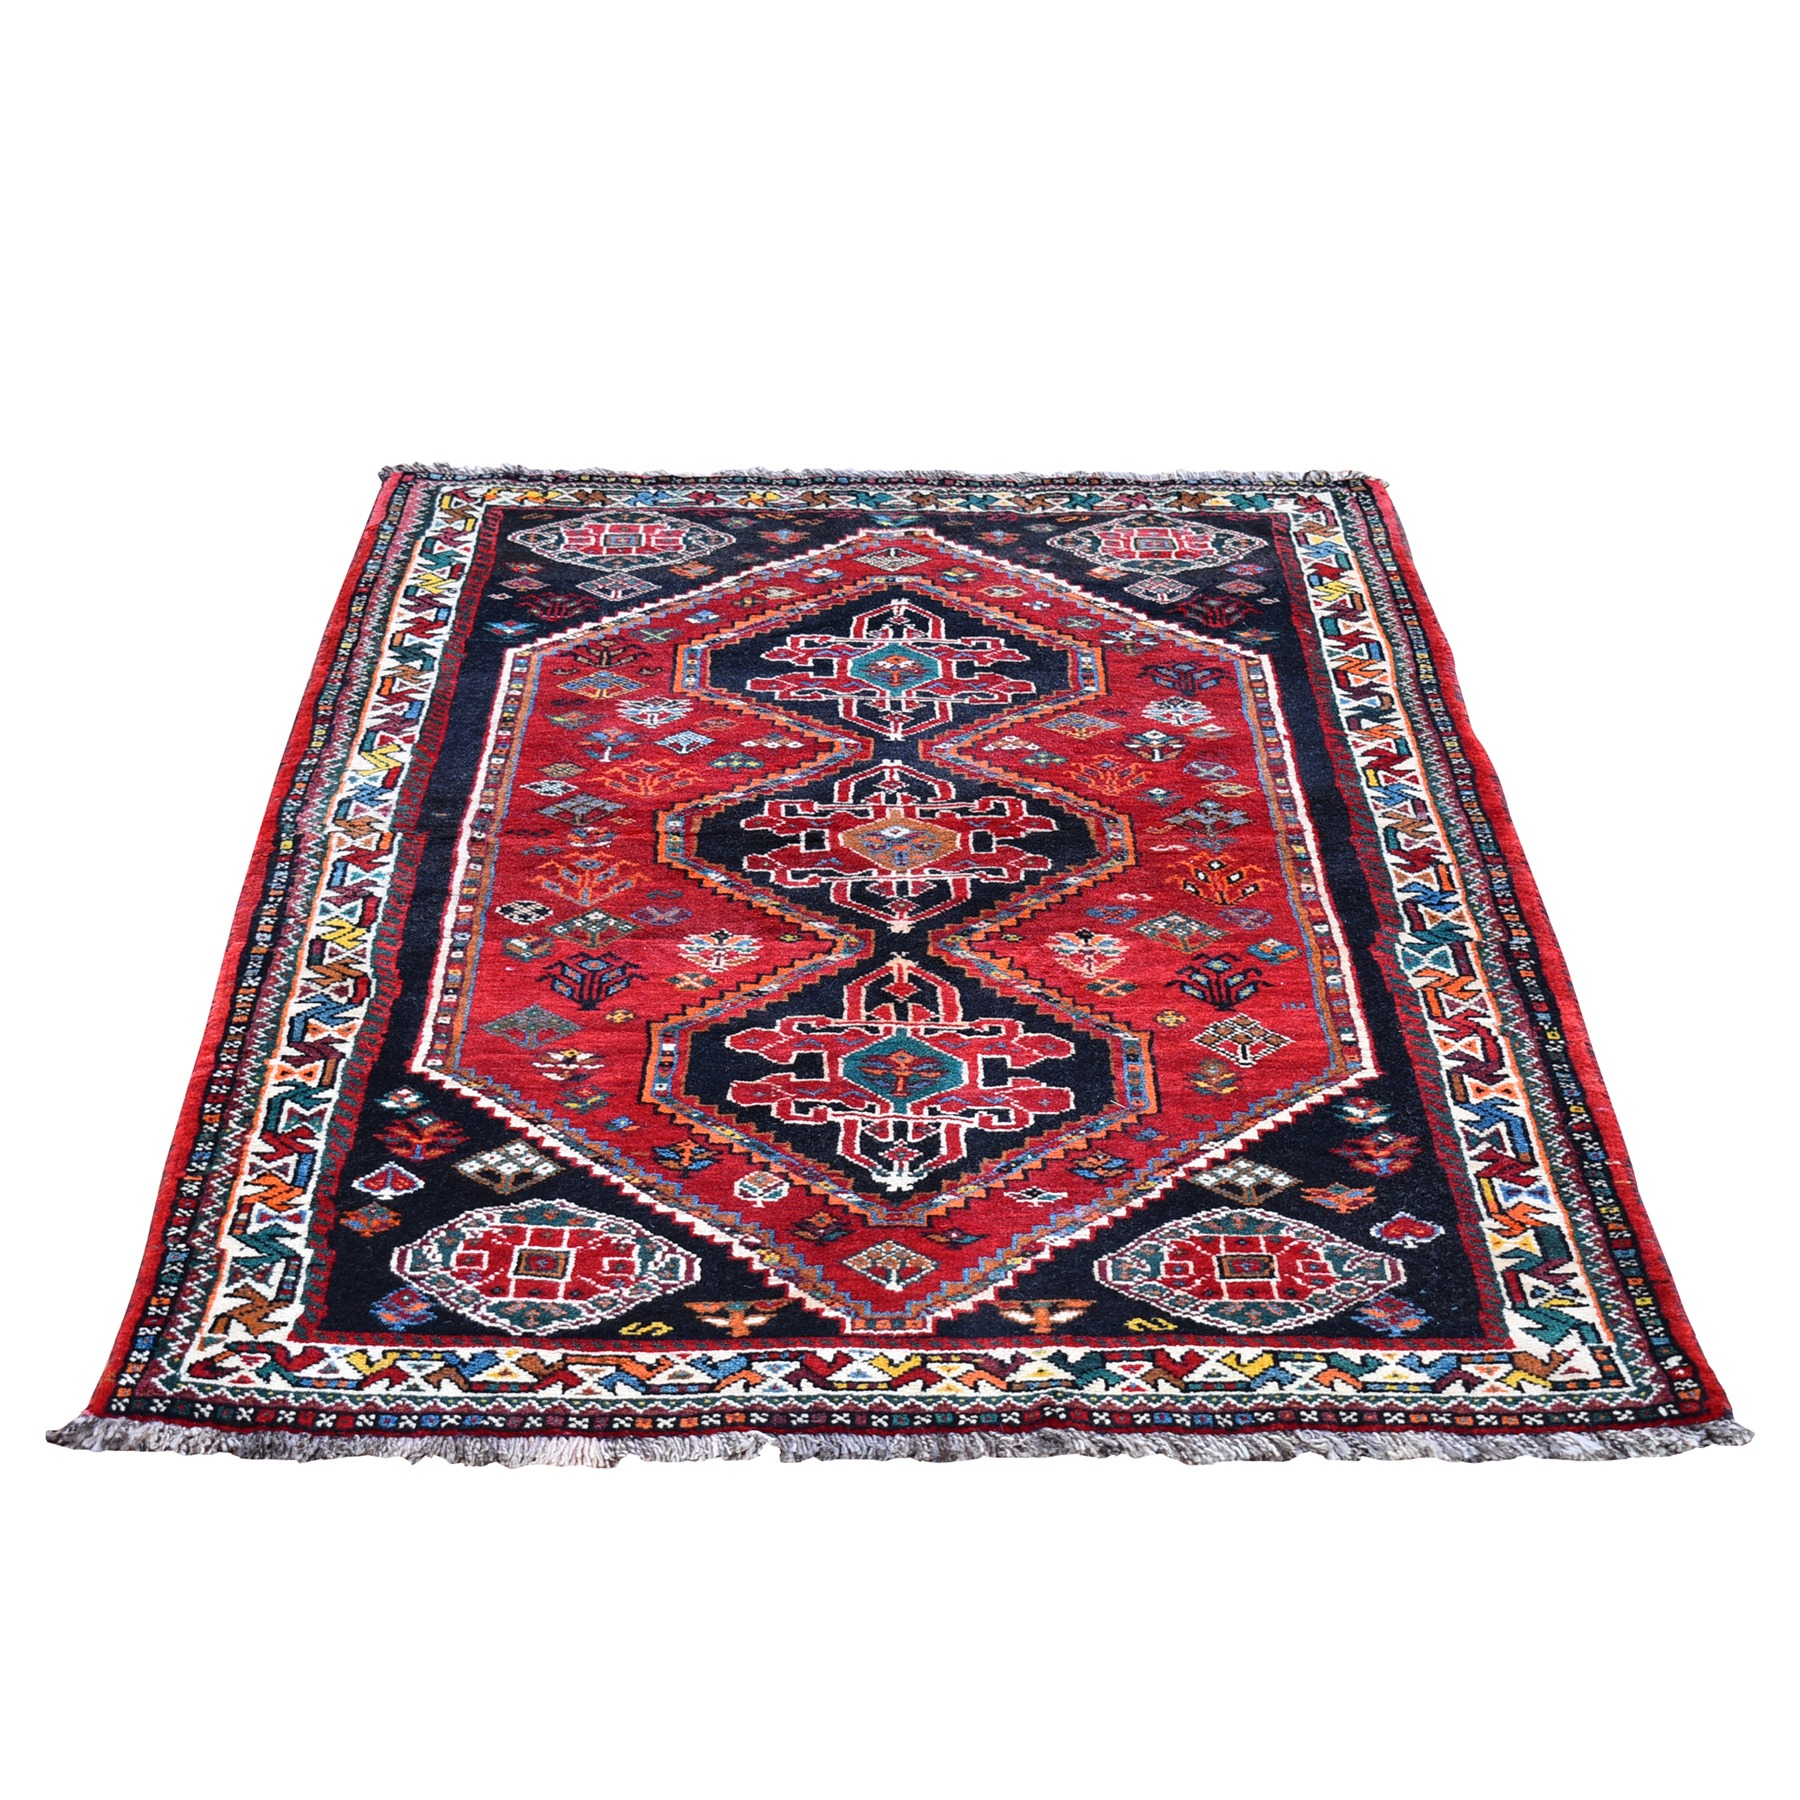 "3'9""x5'8"" Red New Persian Shiraz with Abrash Hand Knotted Organic Wool Oriental Rug"